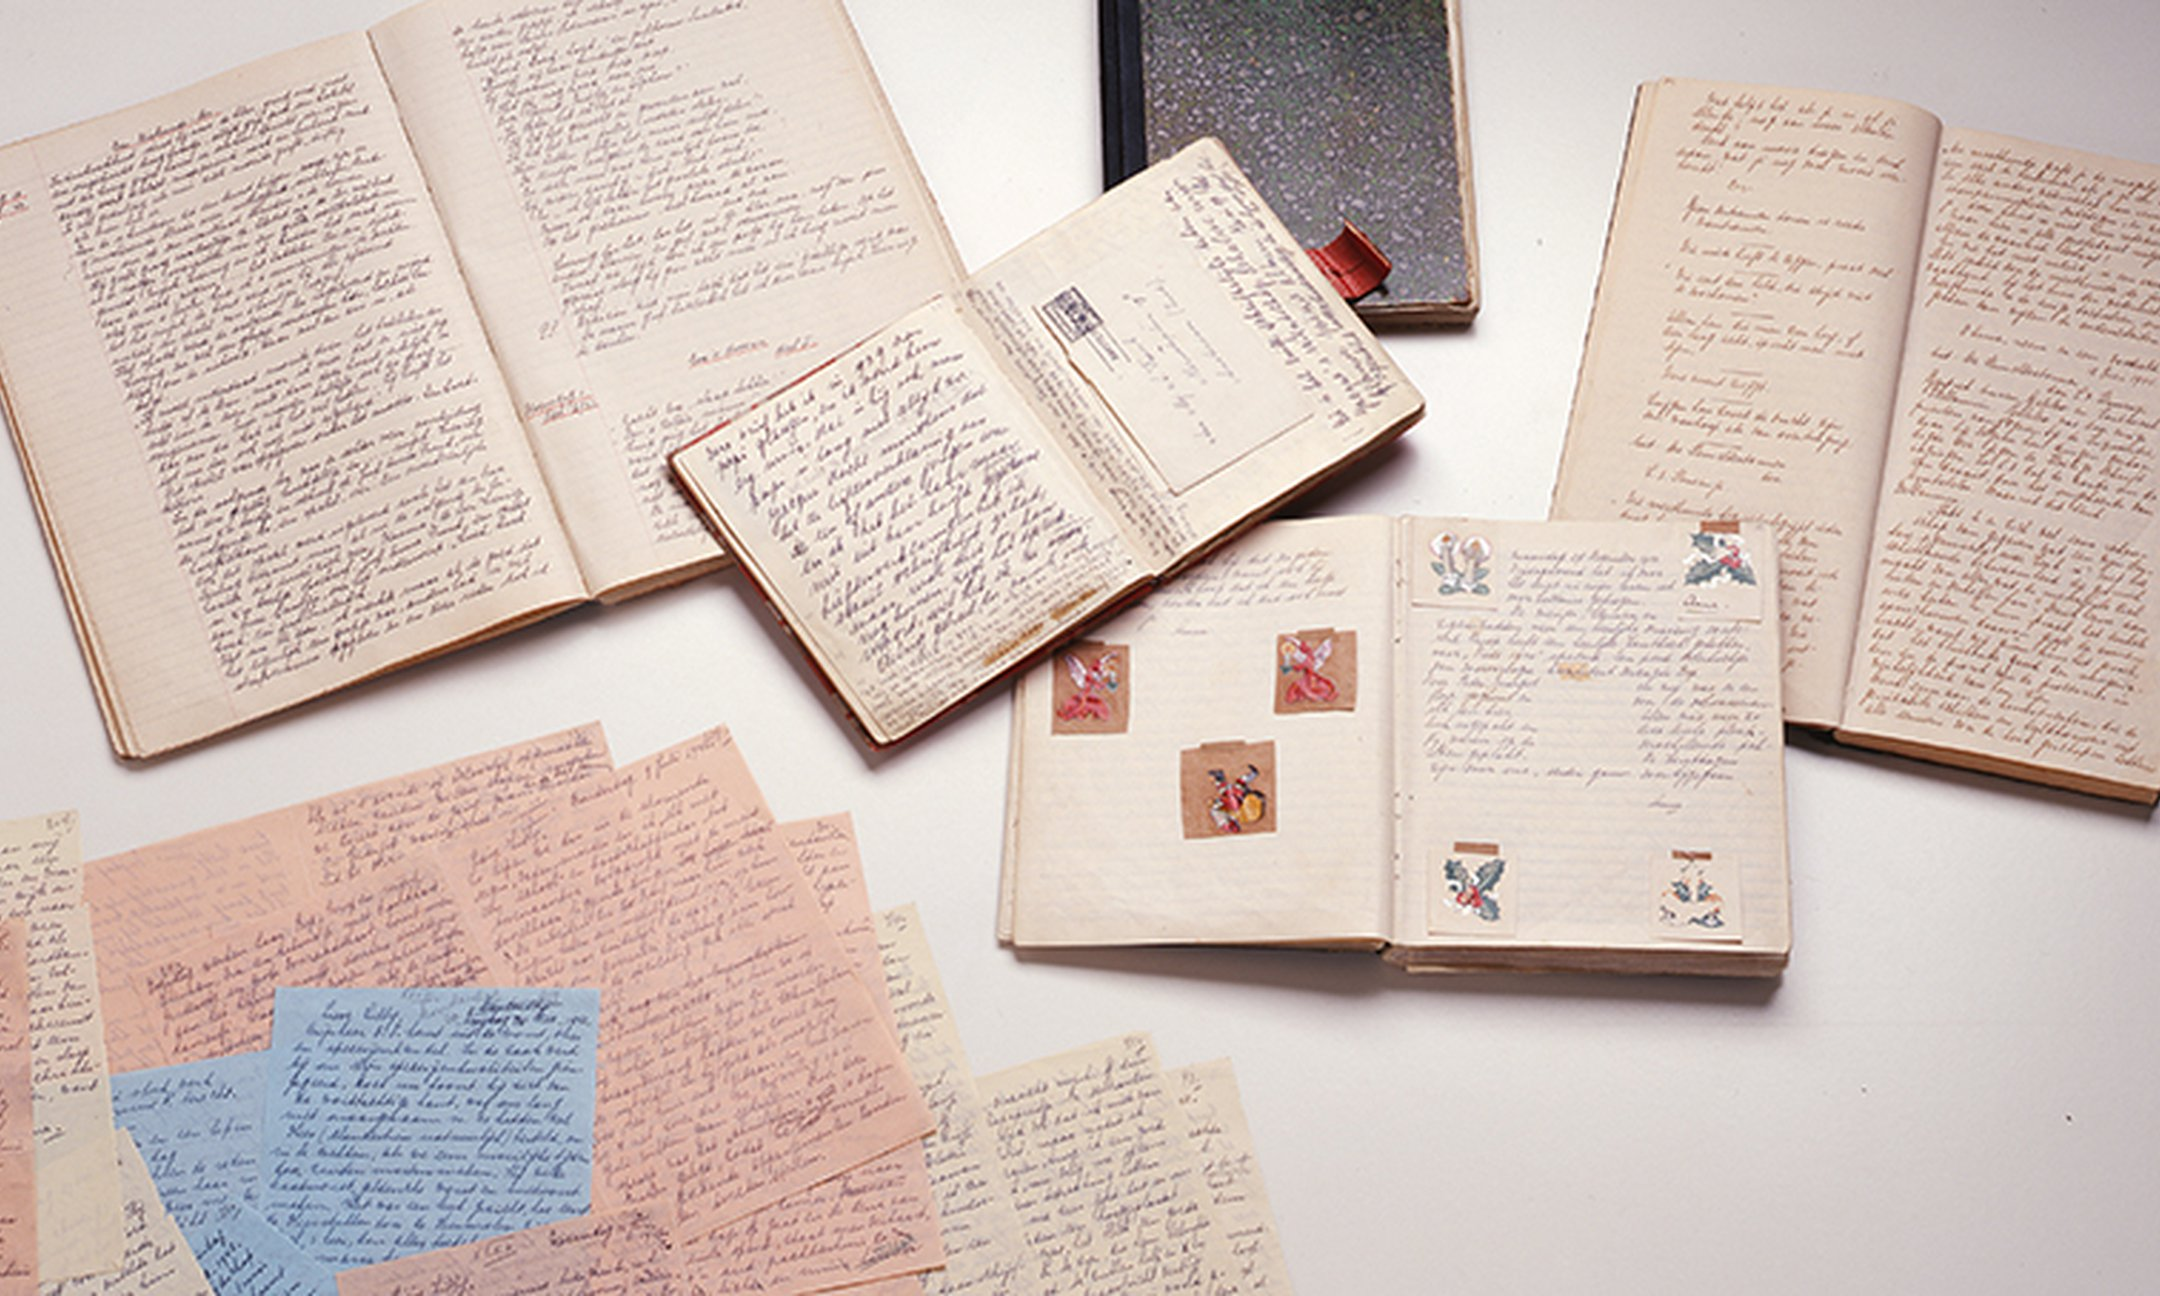 image of anne frank's diaries, open pages, loose letters, all laid out on display